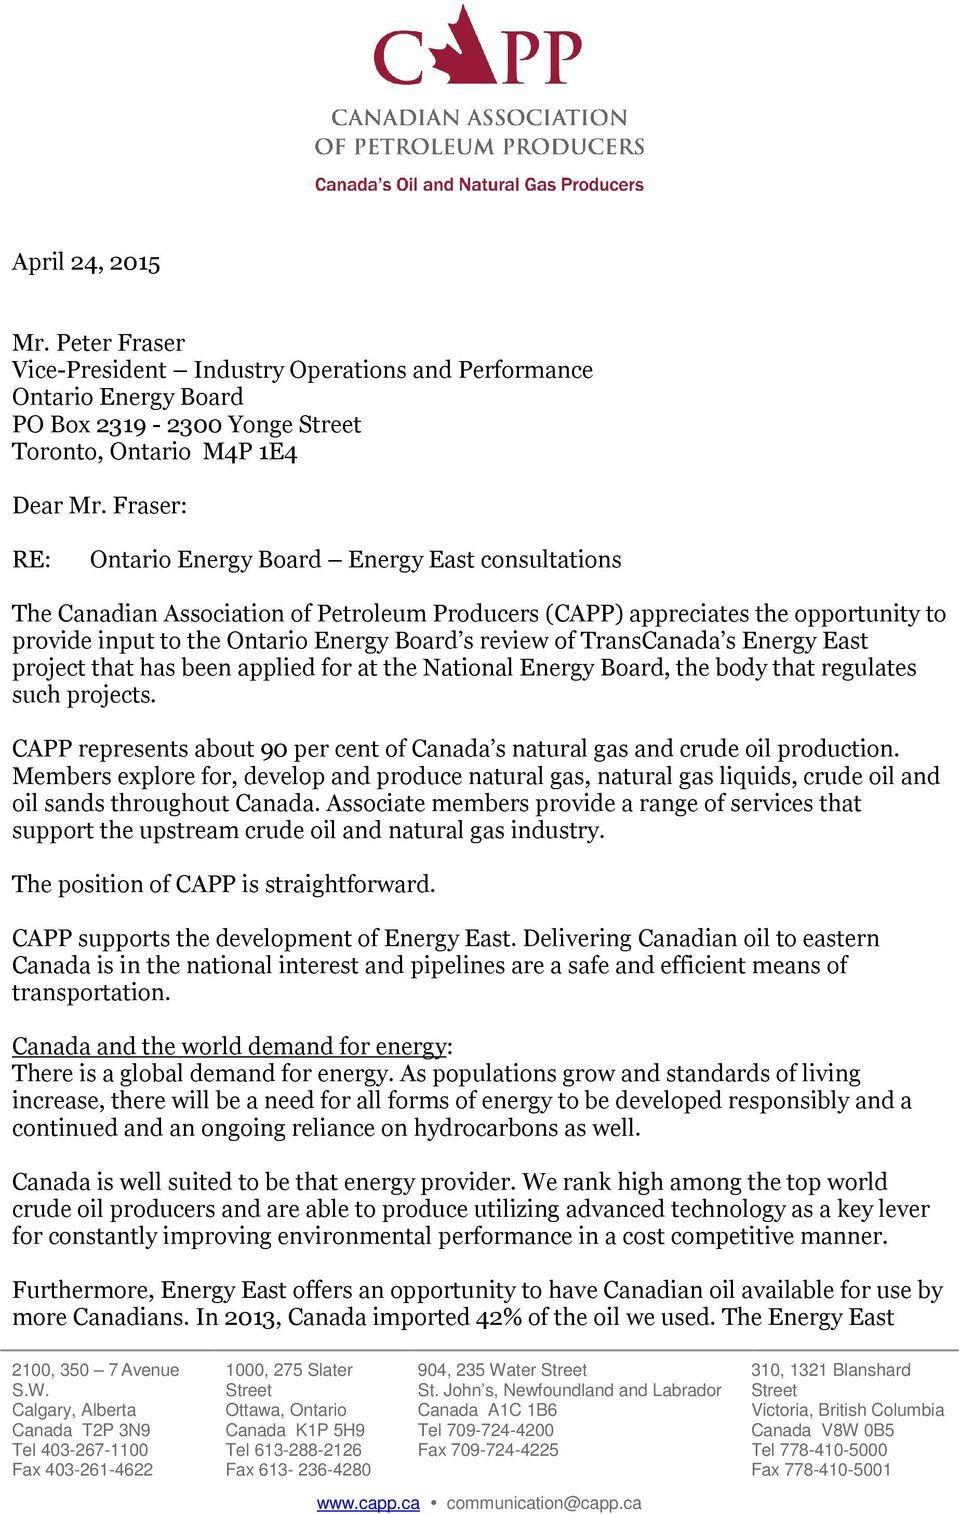 been applied for at the National Energy Board, the body that regulates such projects. CAPP represents about 90 per cent of Canada s natural gas and crude oil production.